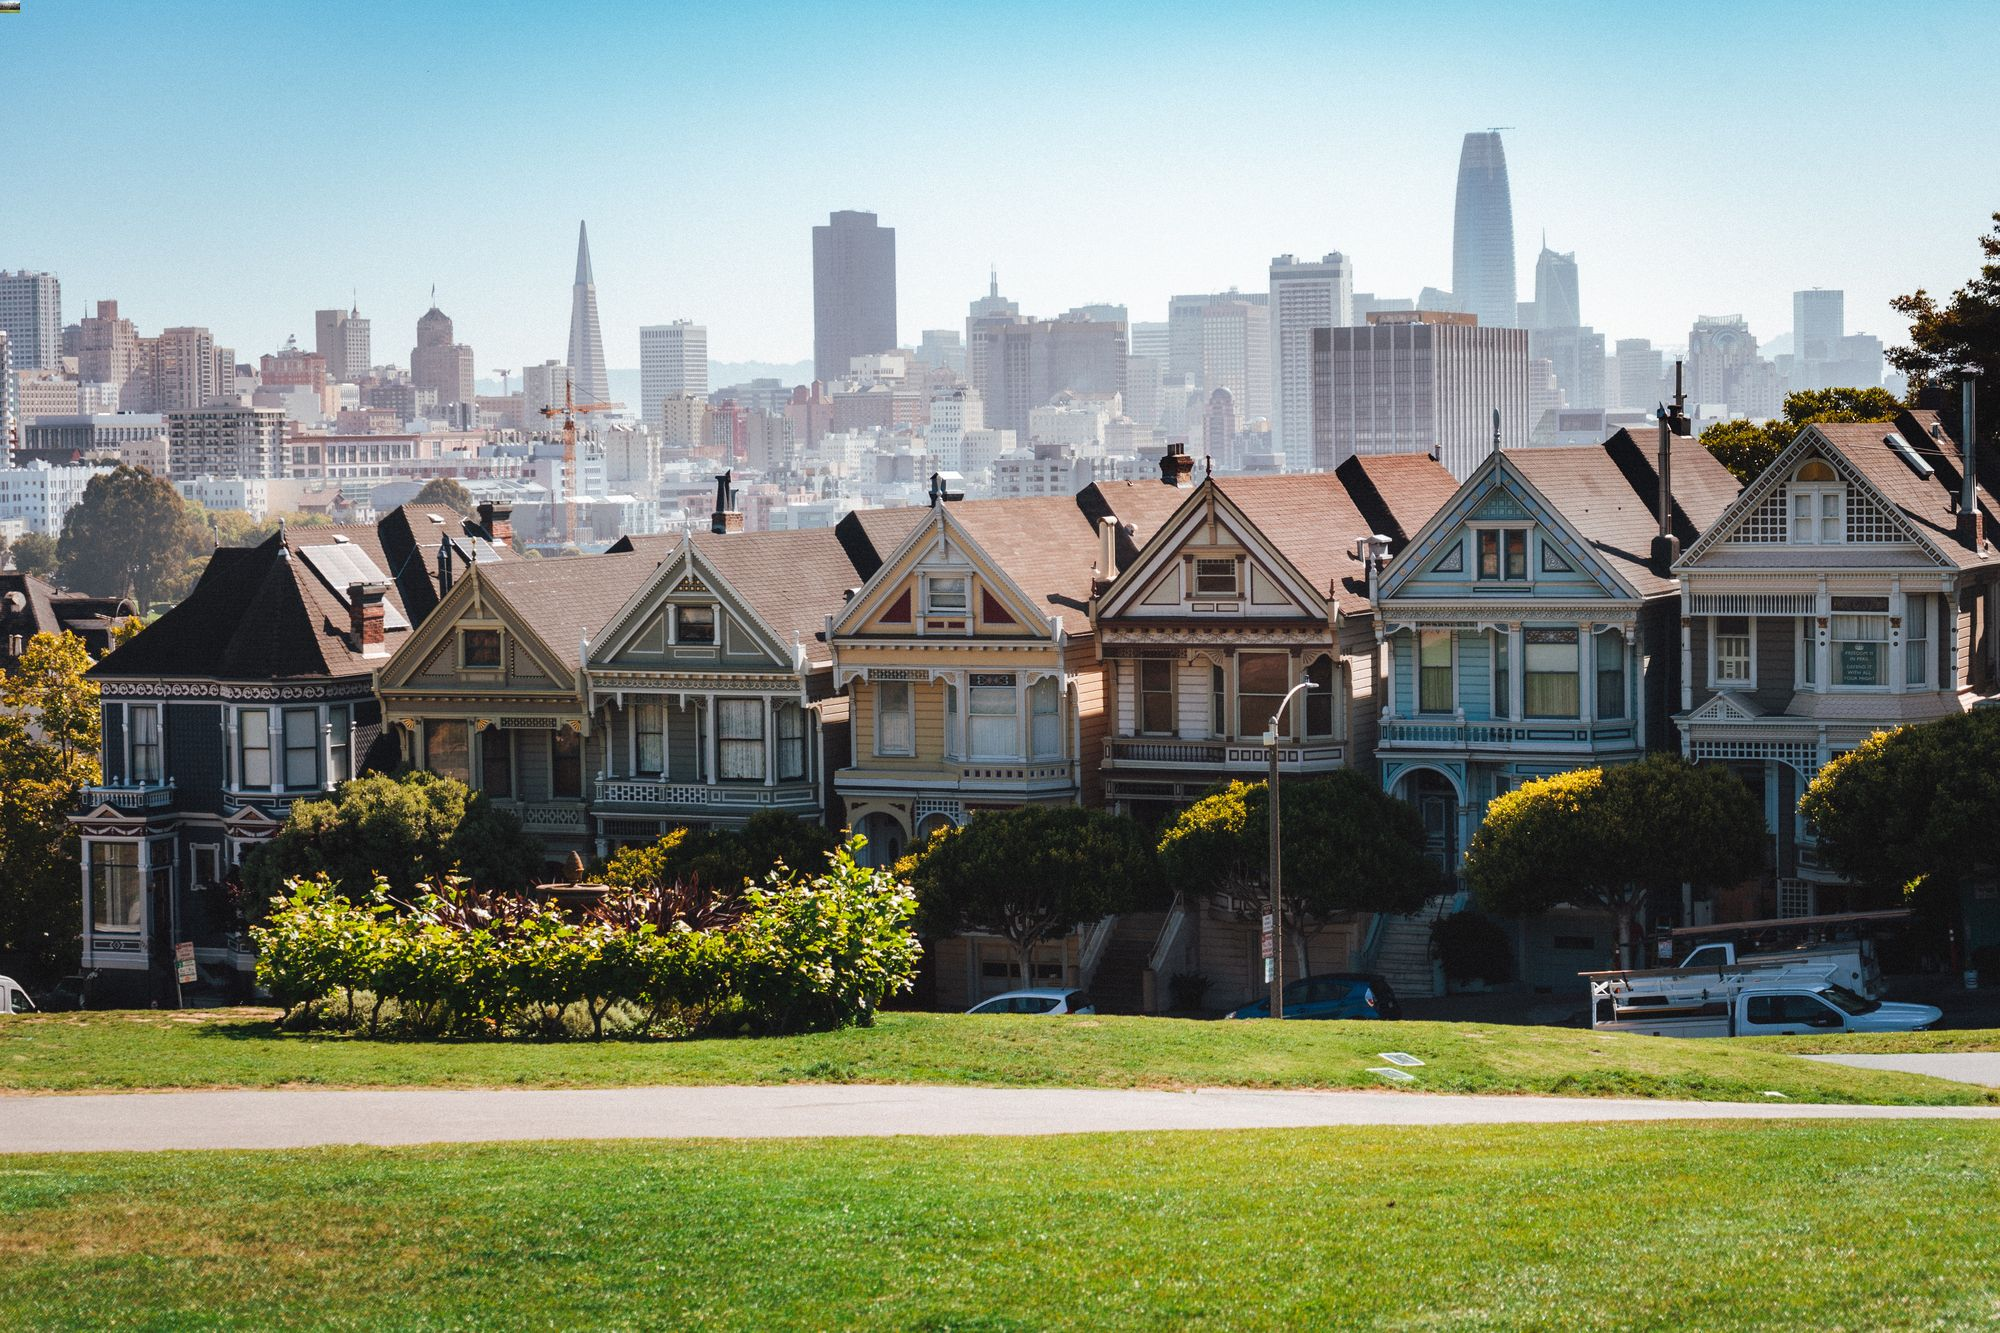 Accessory Dwelling Units Can Be a Great Investment – Here's What You Need to Know